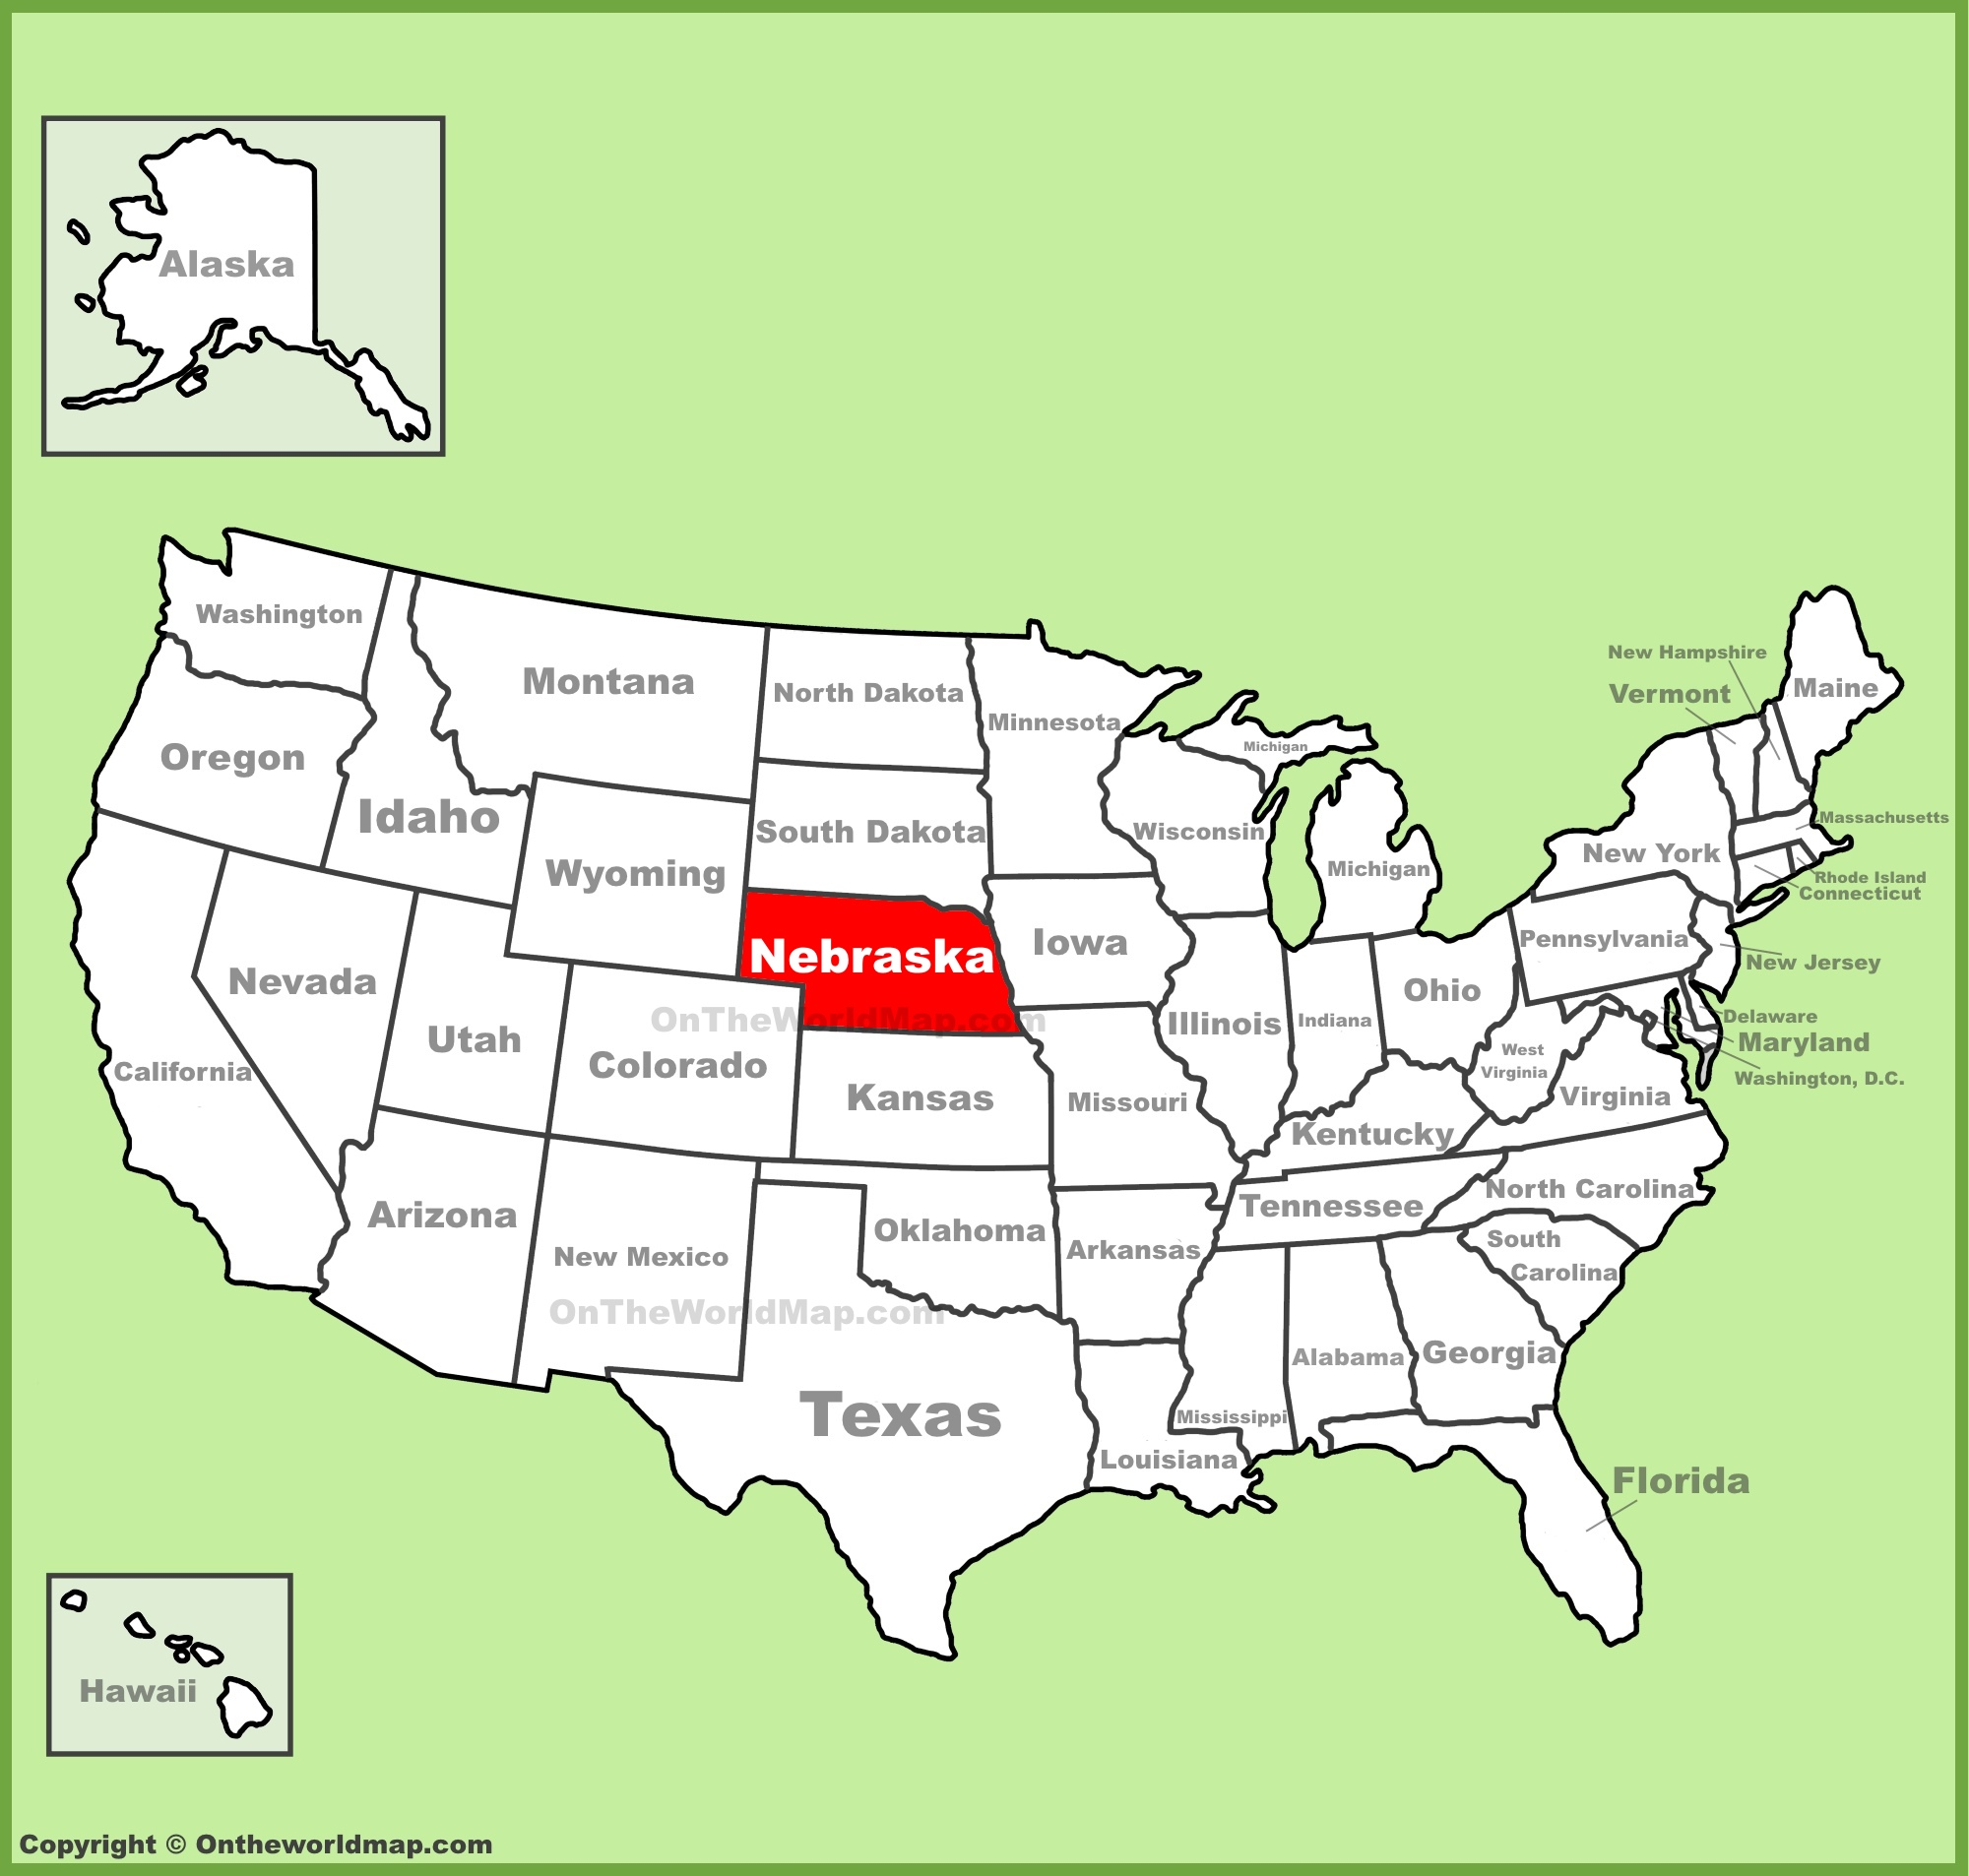 Ne Us States Map Nebraska location on the U.S. Map